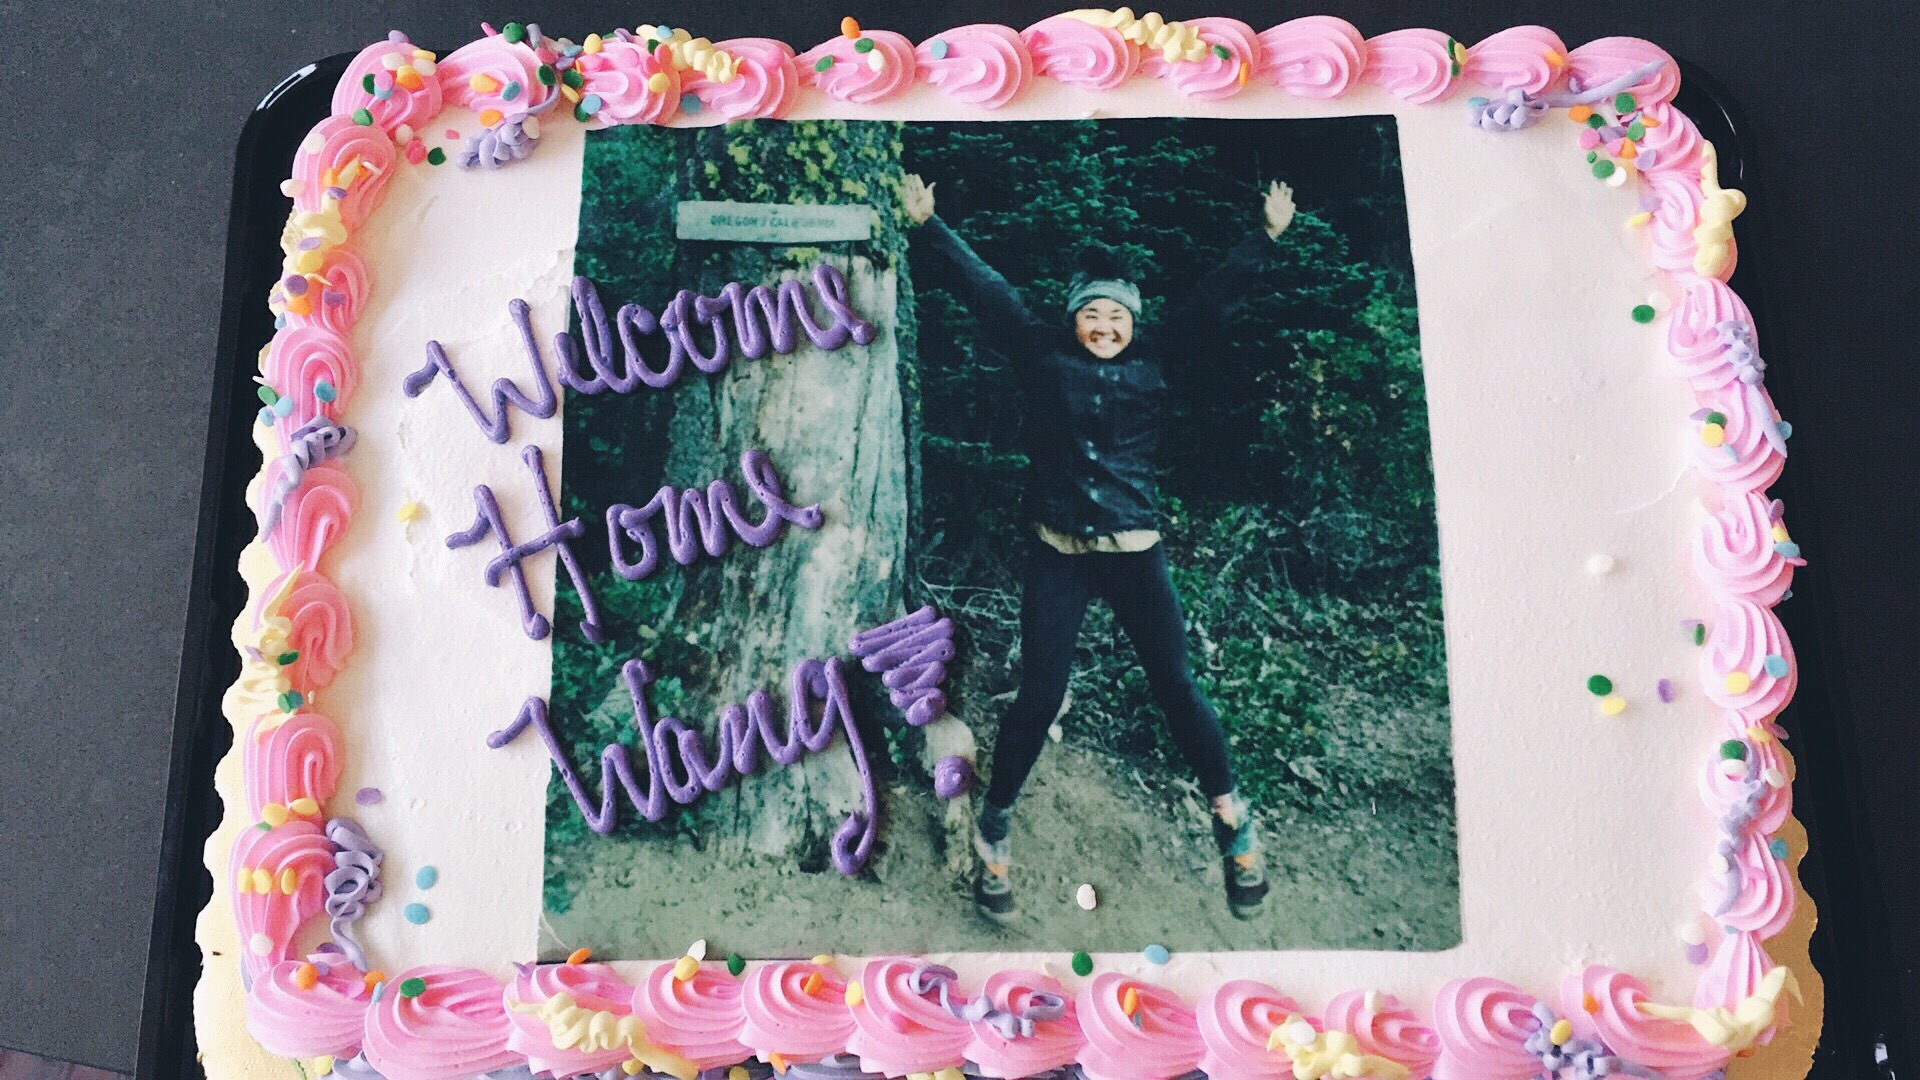 Cake with my face on it. At least I made it to Oregon!